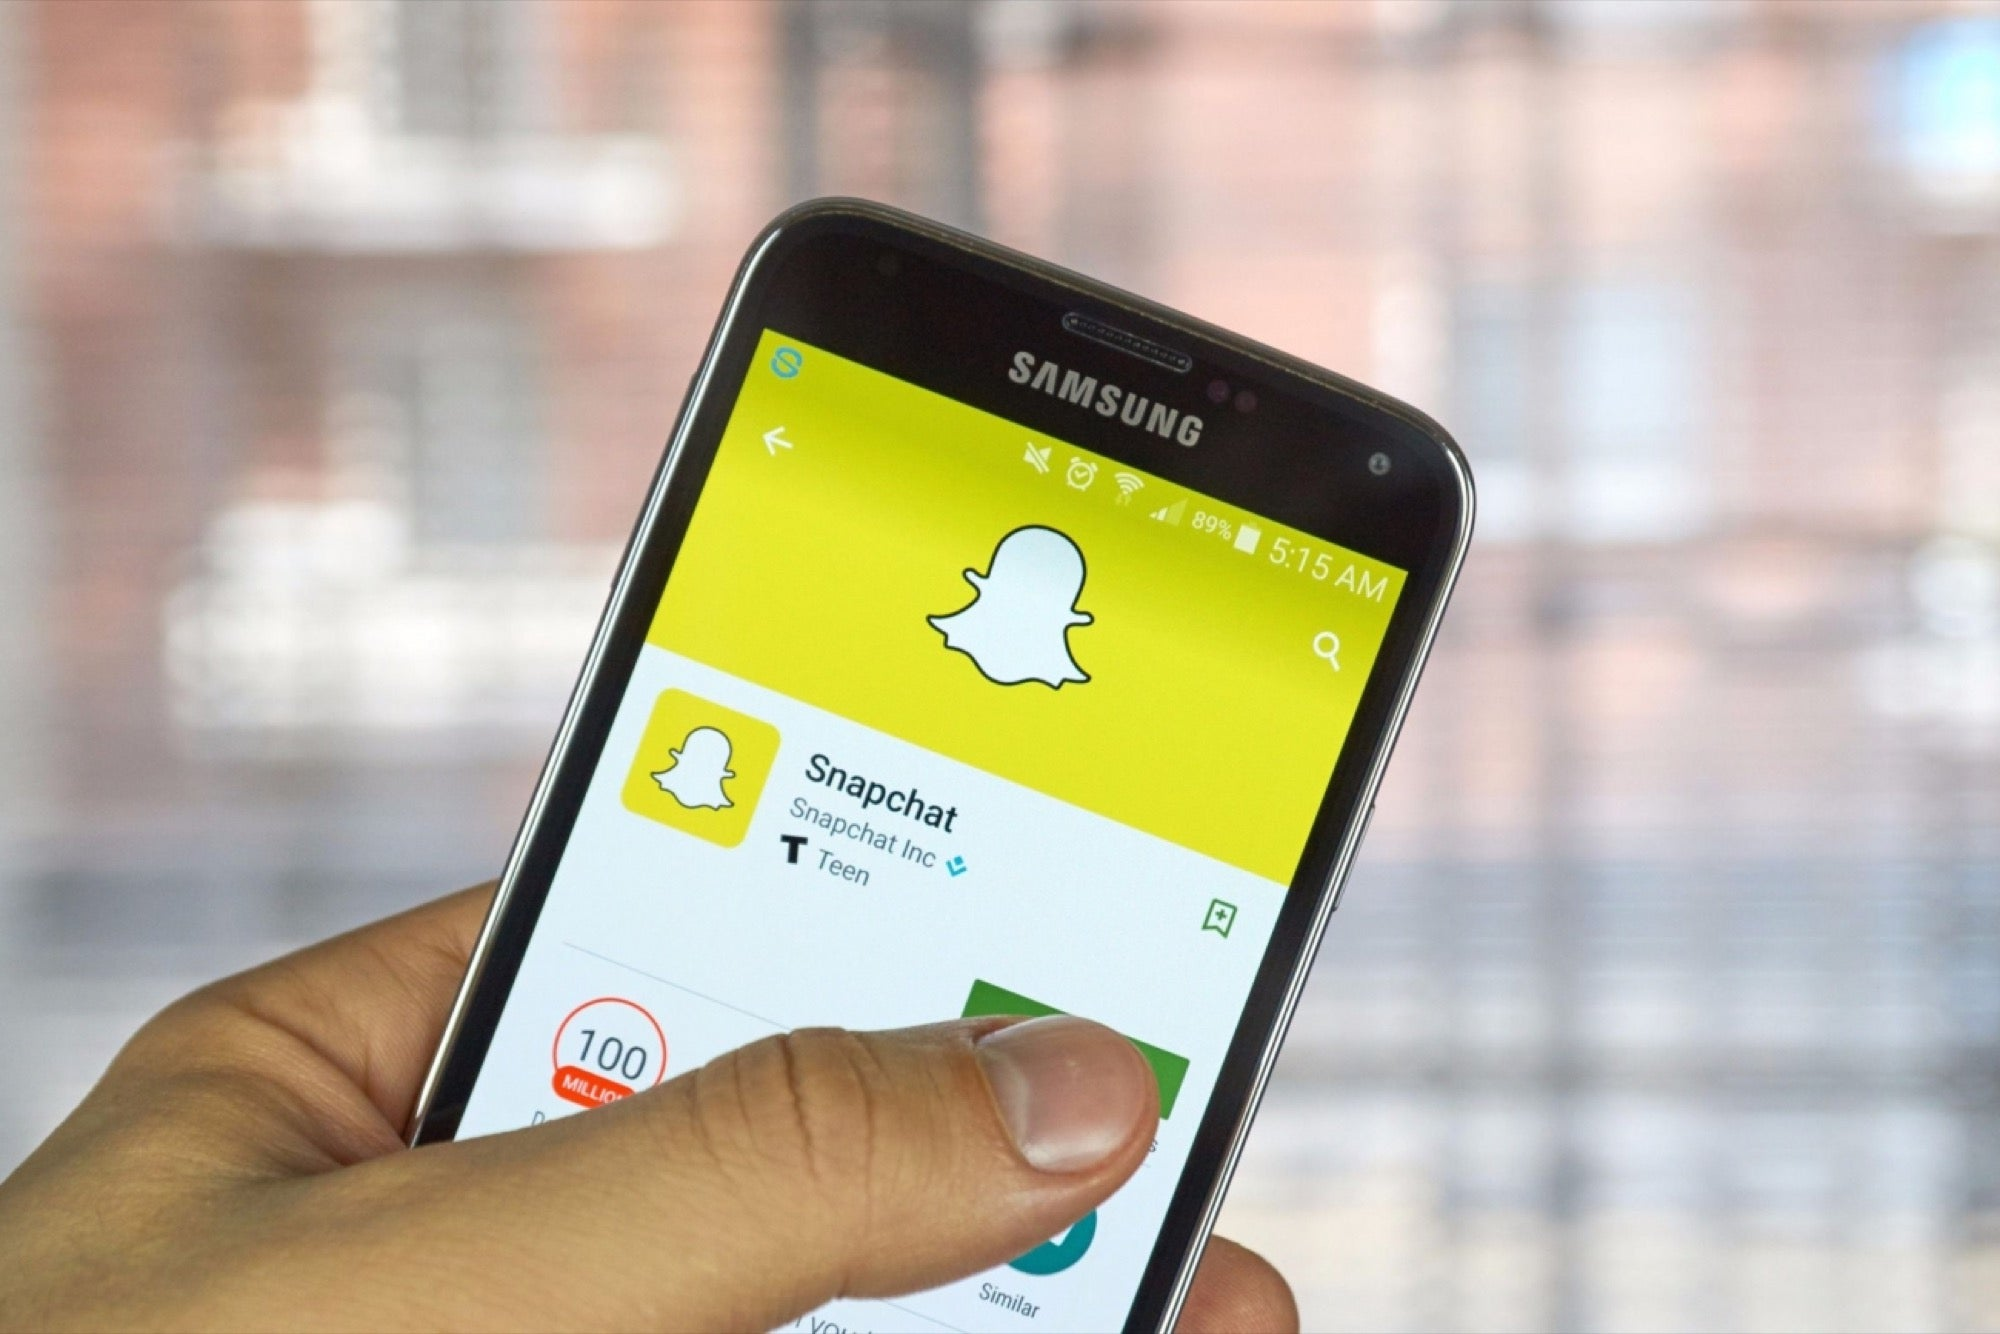 The Marketing Genius Behind Snapchat's Name Change